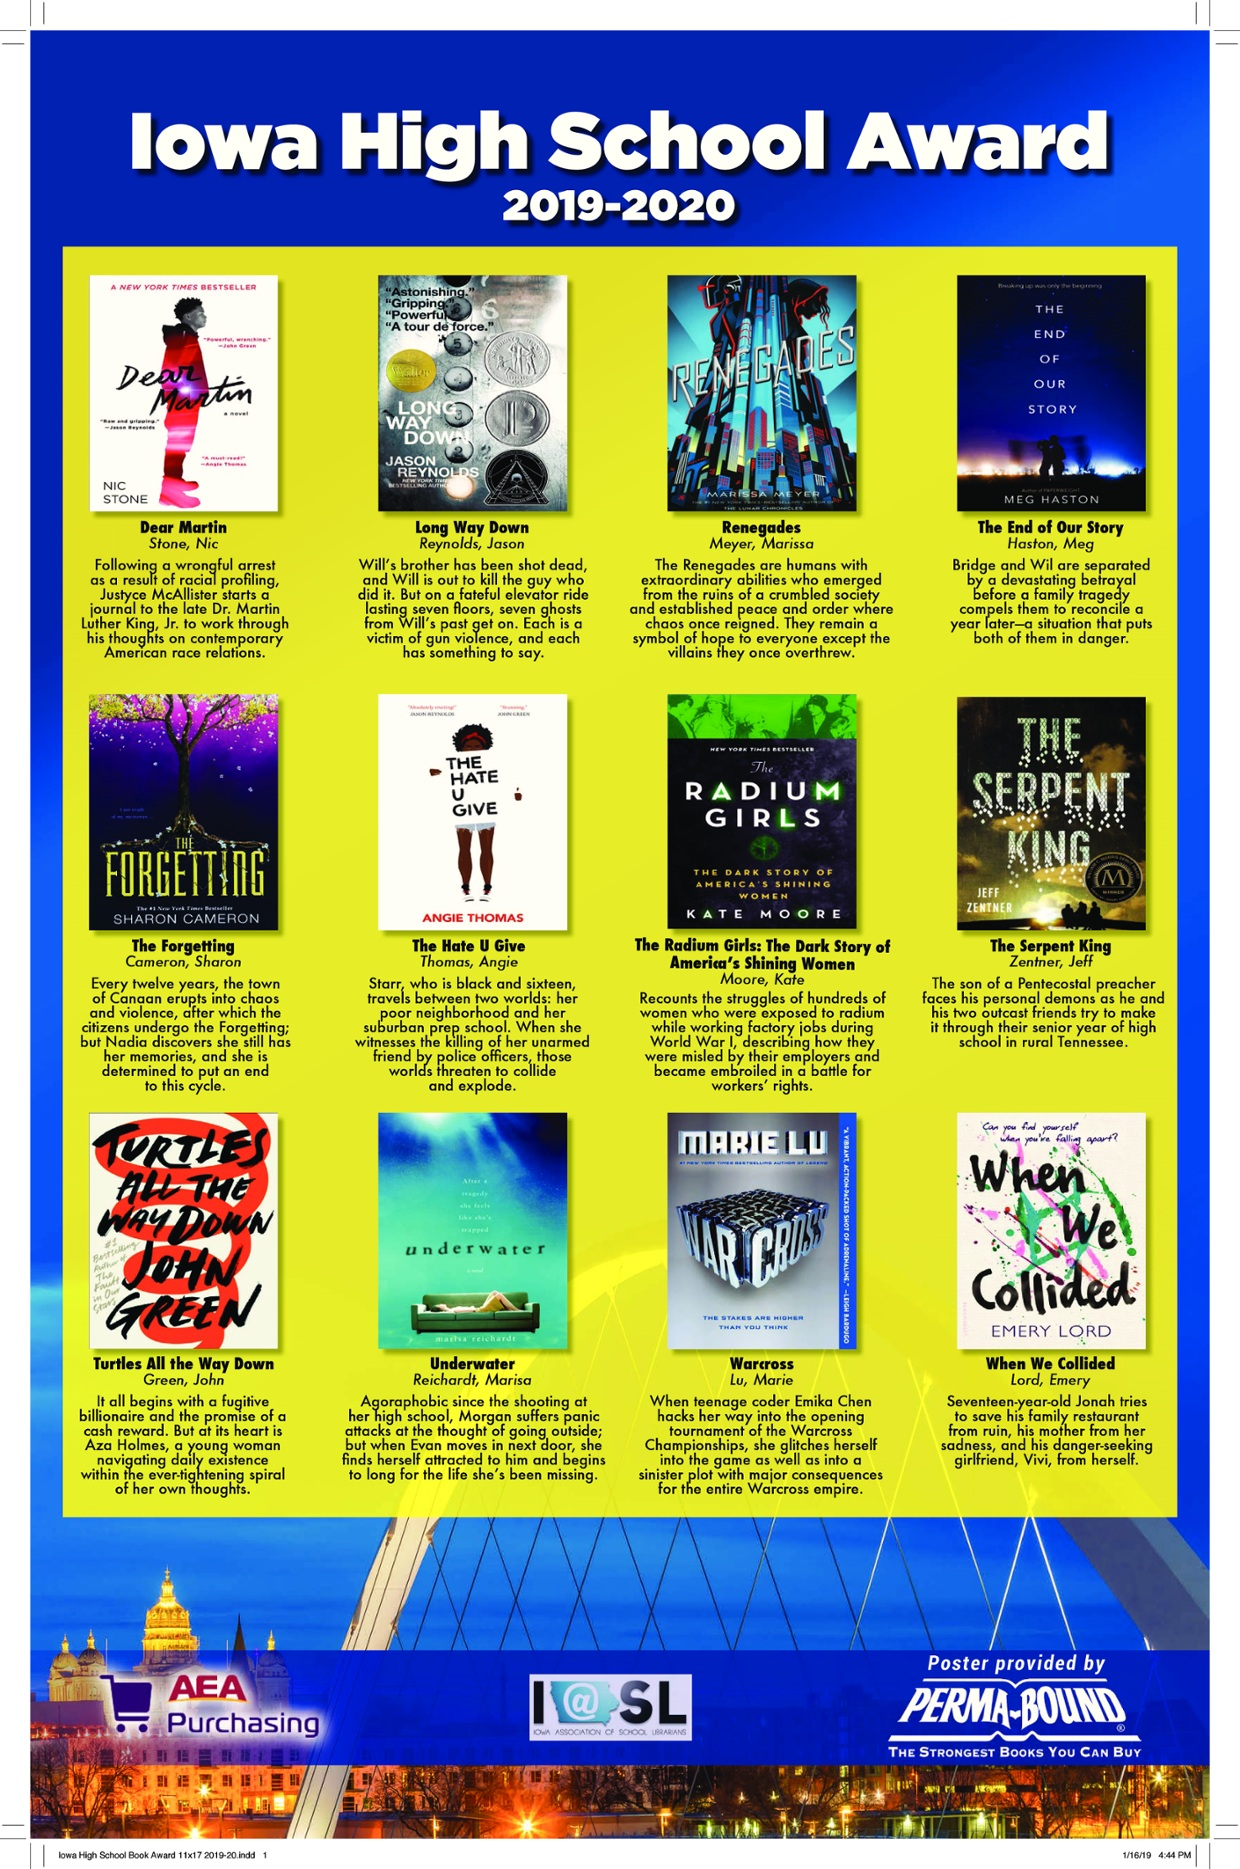 Iowa High School Book Award 19-20